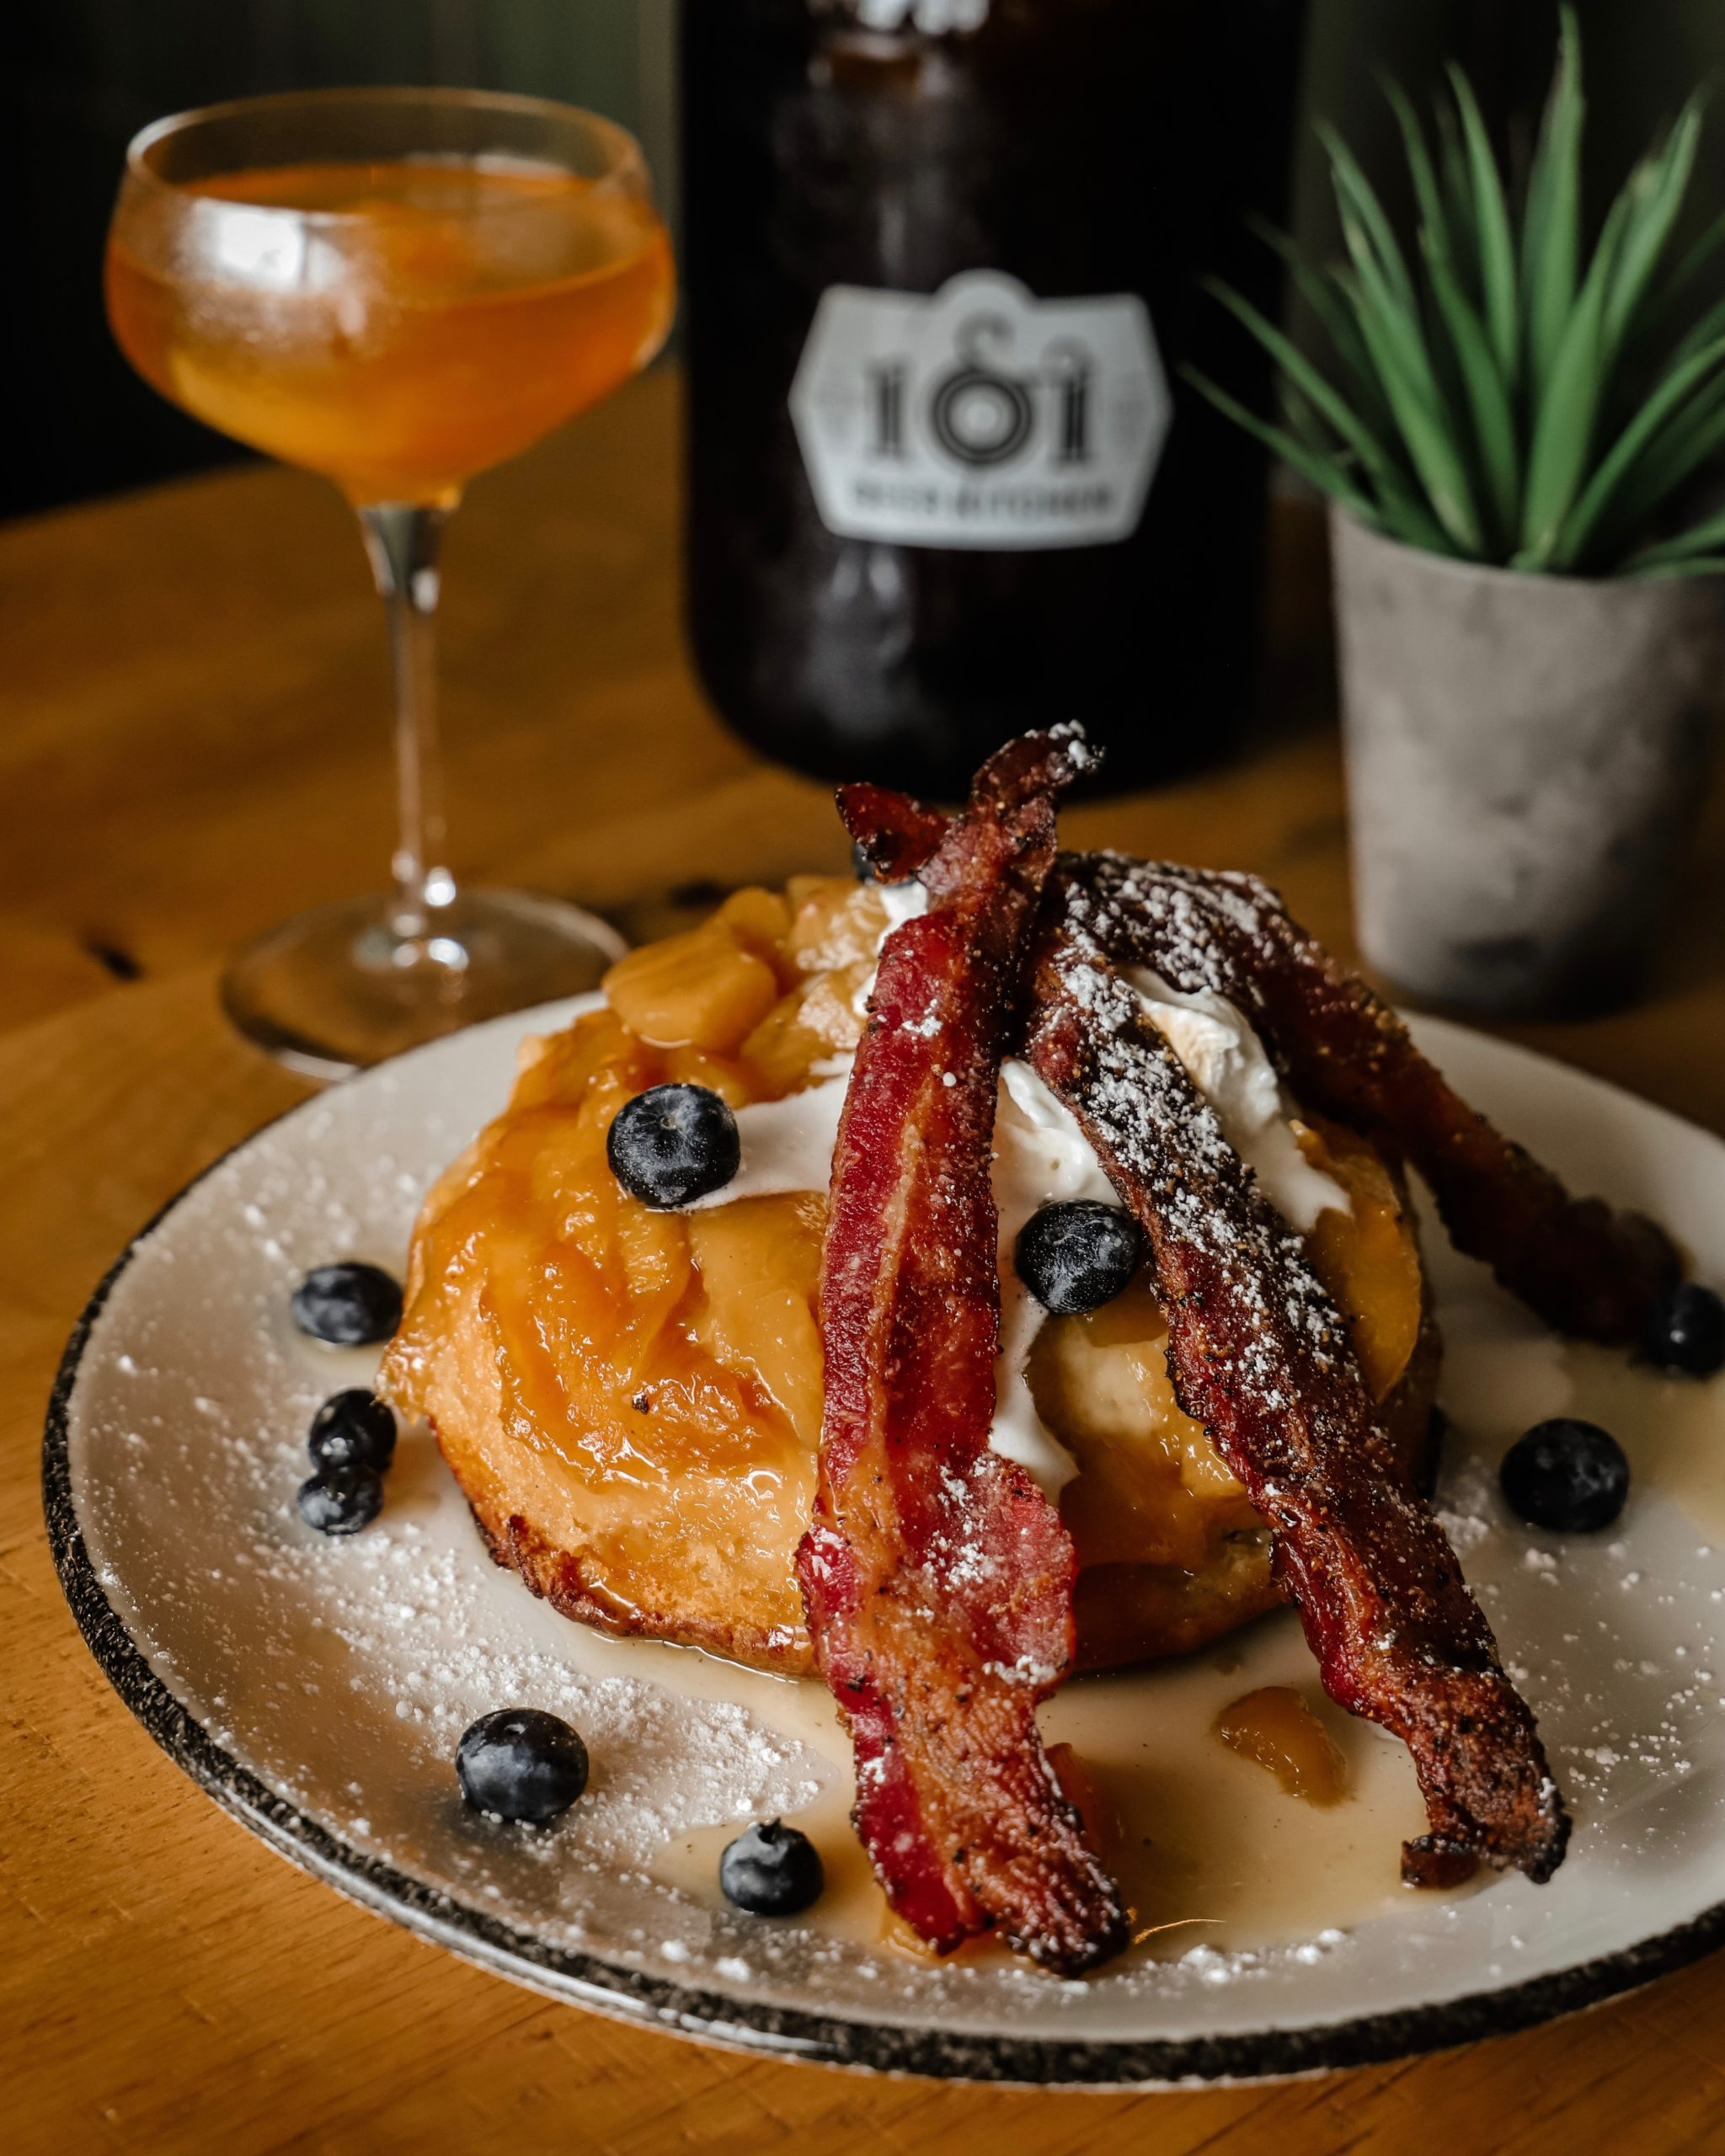 a peach pancake topped with bacon, blueberries, syrup and powdered sugar